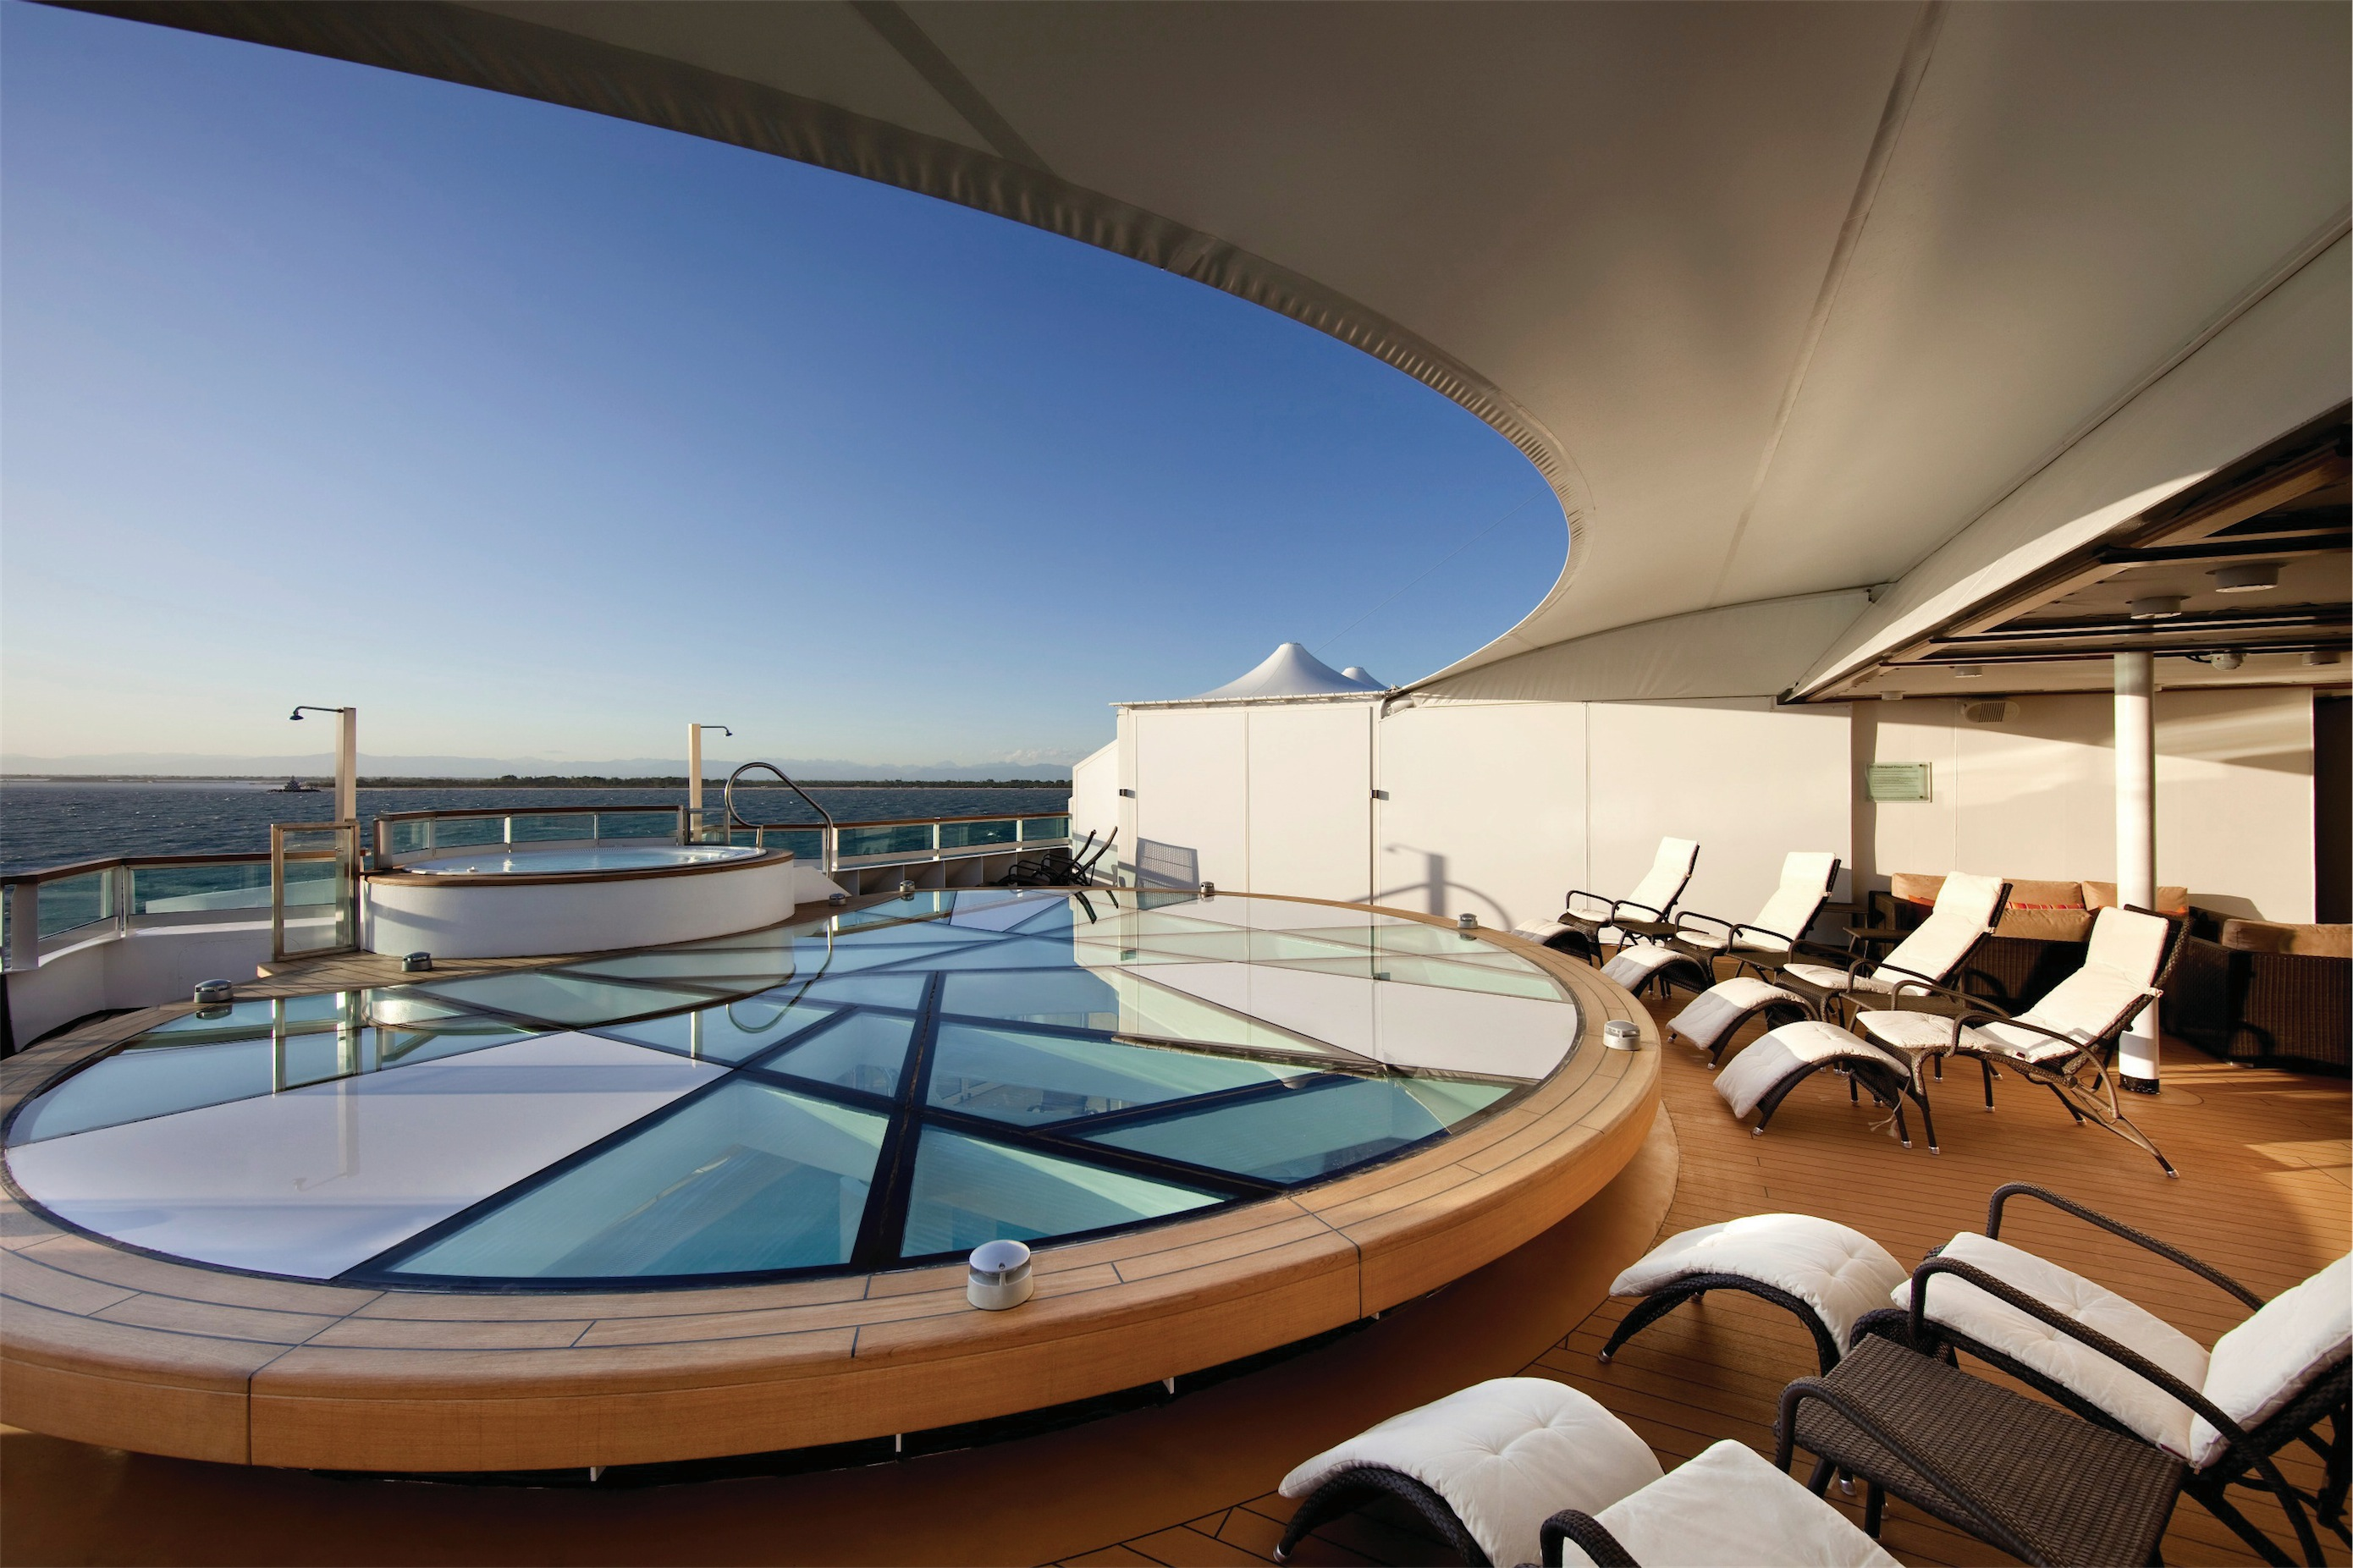 Seabourn Odyssey Class Exterior Spa Terrace.jpg